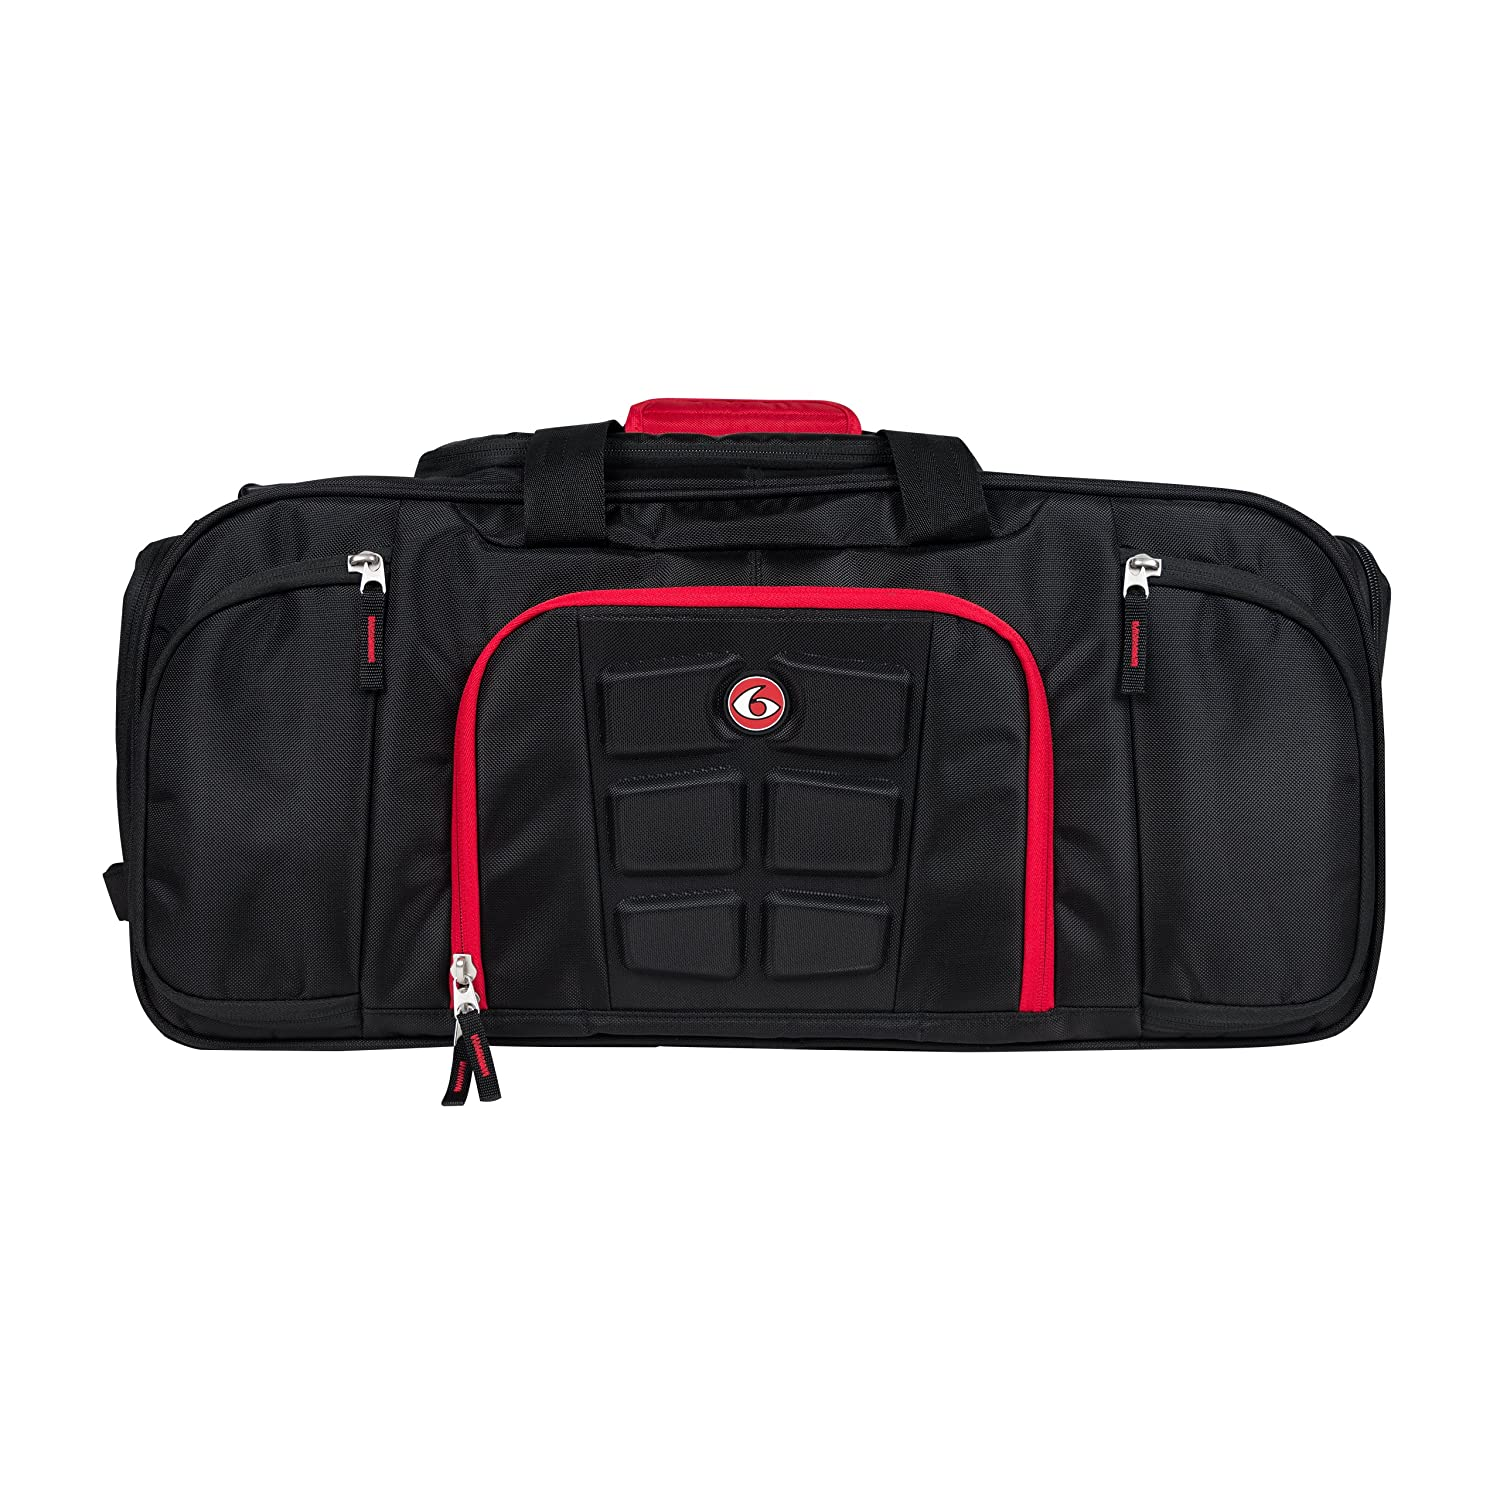 6 Pack Fitness Beast Duffle Bag with Insulated Meal Management System 4d6ae4c761b54